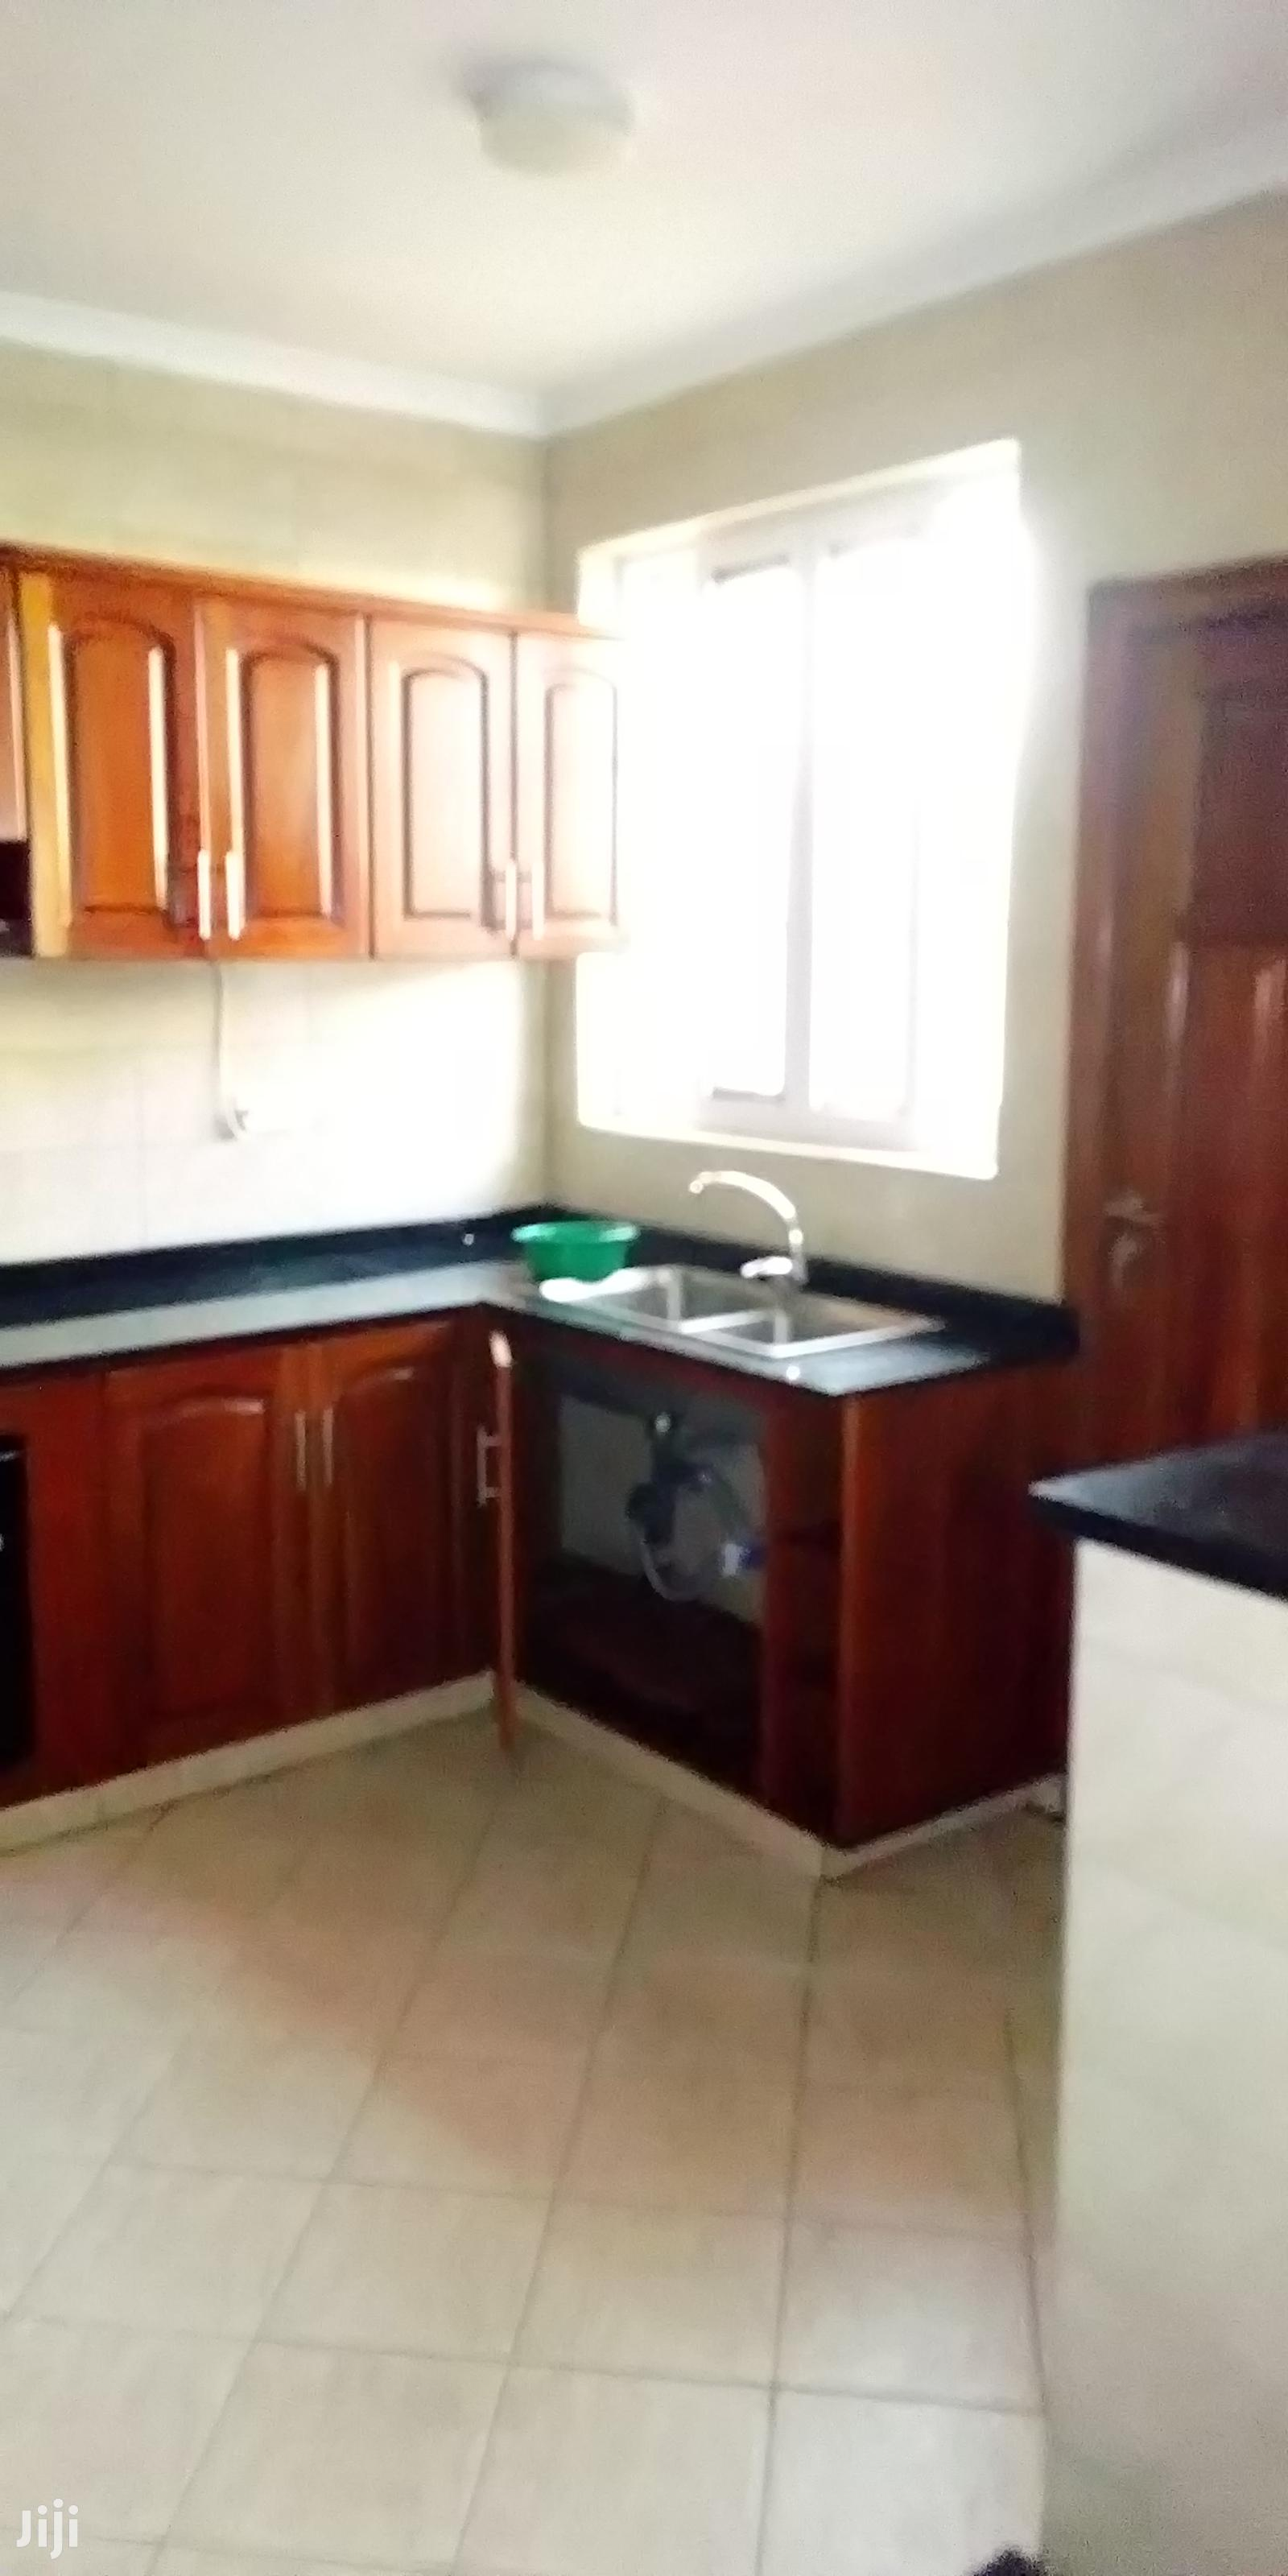 Luxury 3 Bedroom Apartment For Rent At Kariakoo | Houses & Apartments For Rent for sale in Ilala, Dar es Salaam, Tanzania